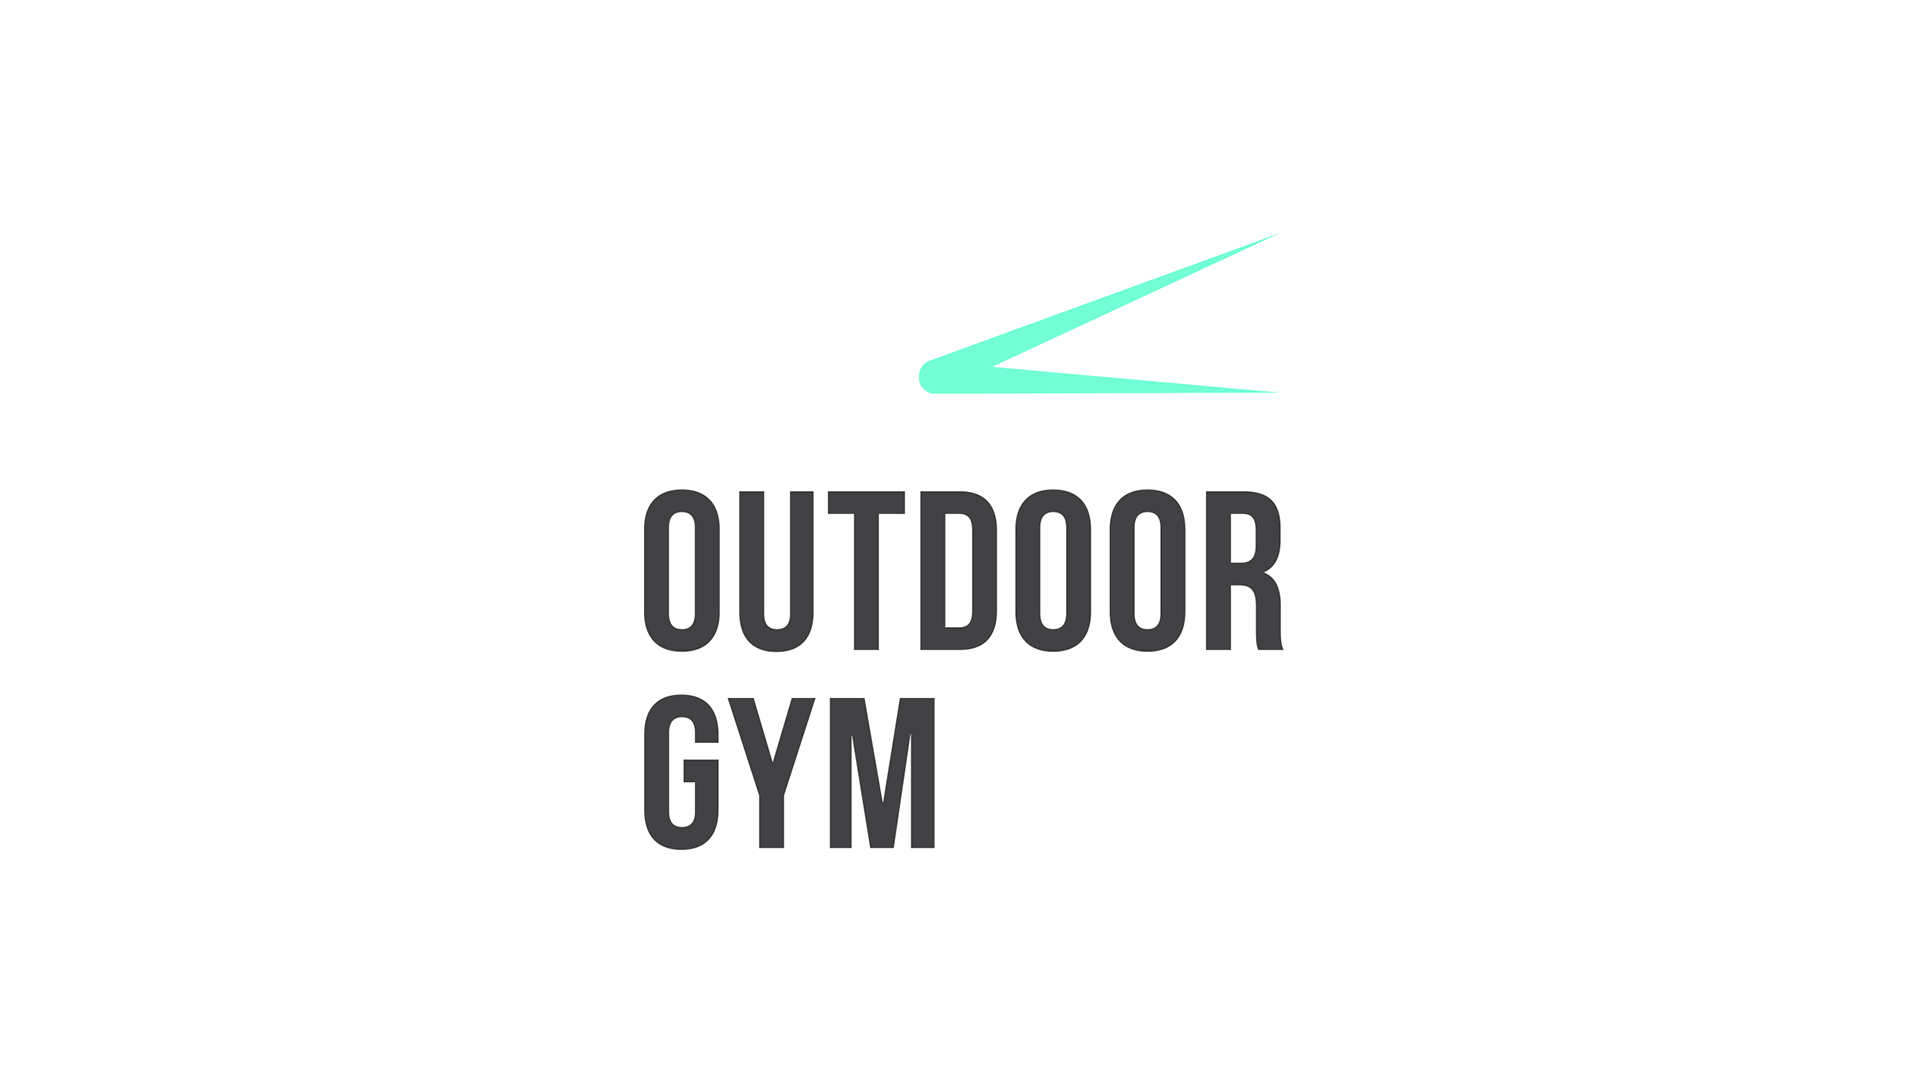 Outdoor Gym Referenz Logo